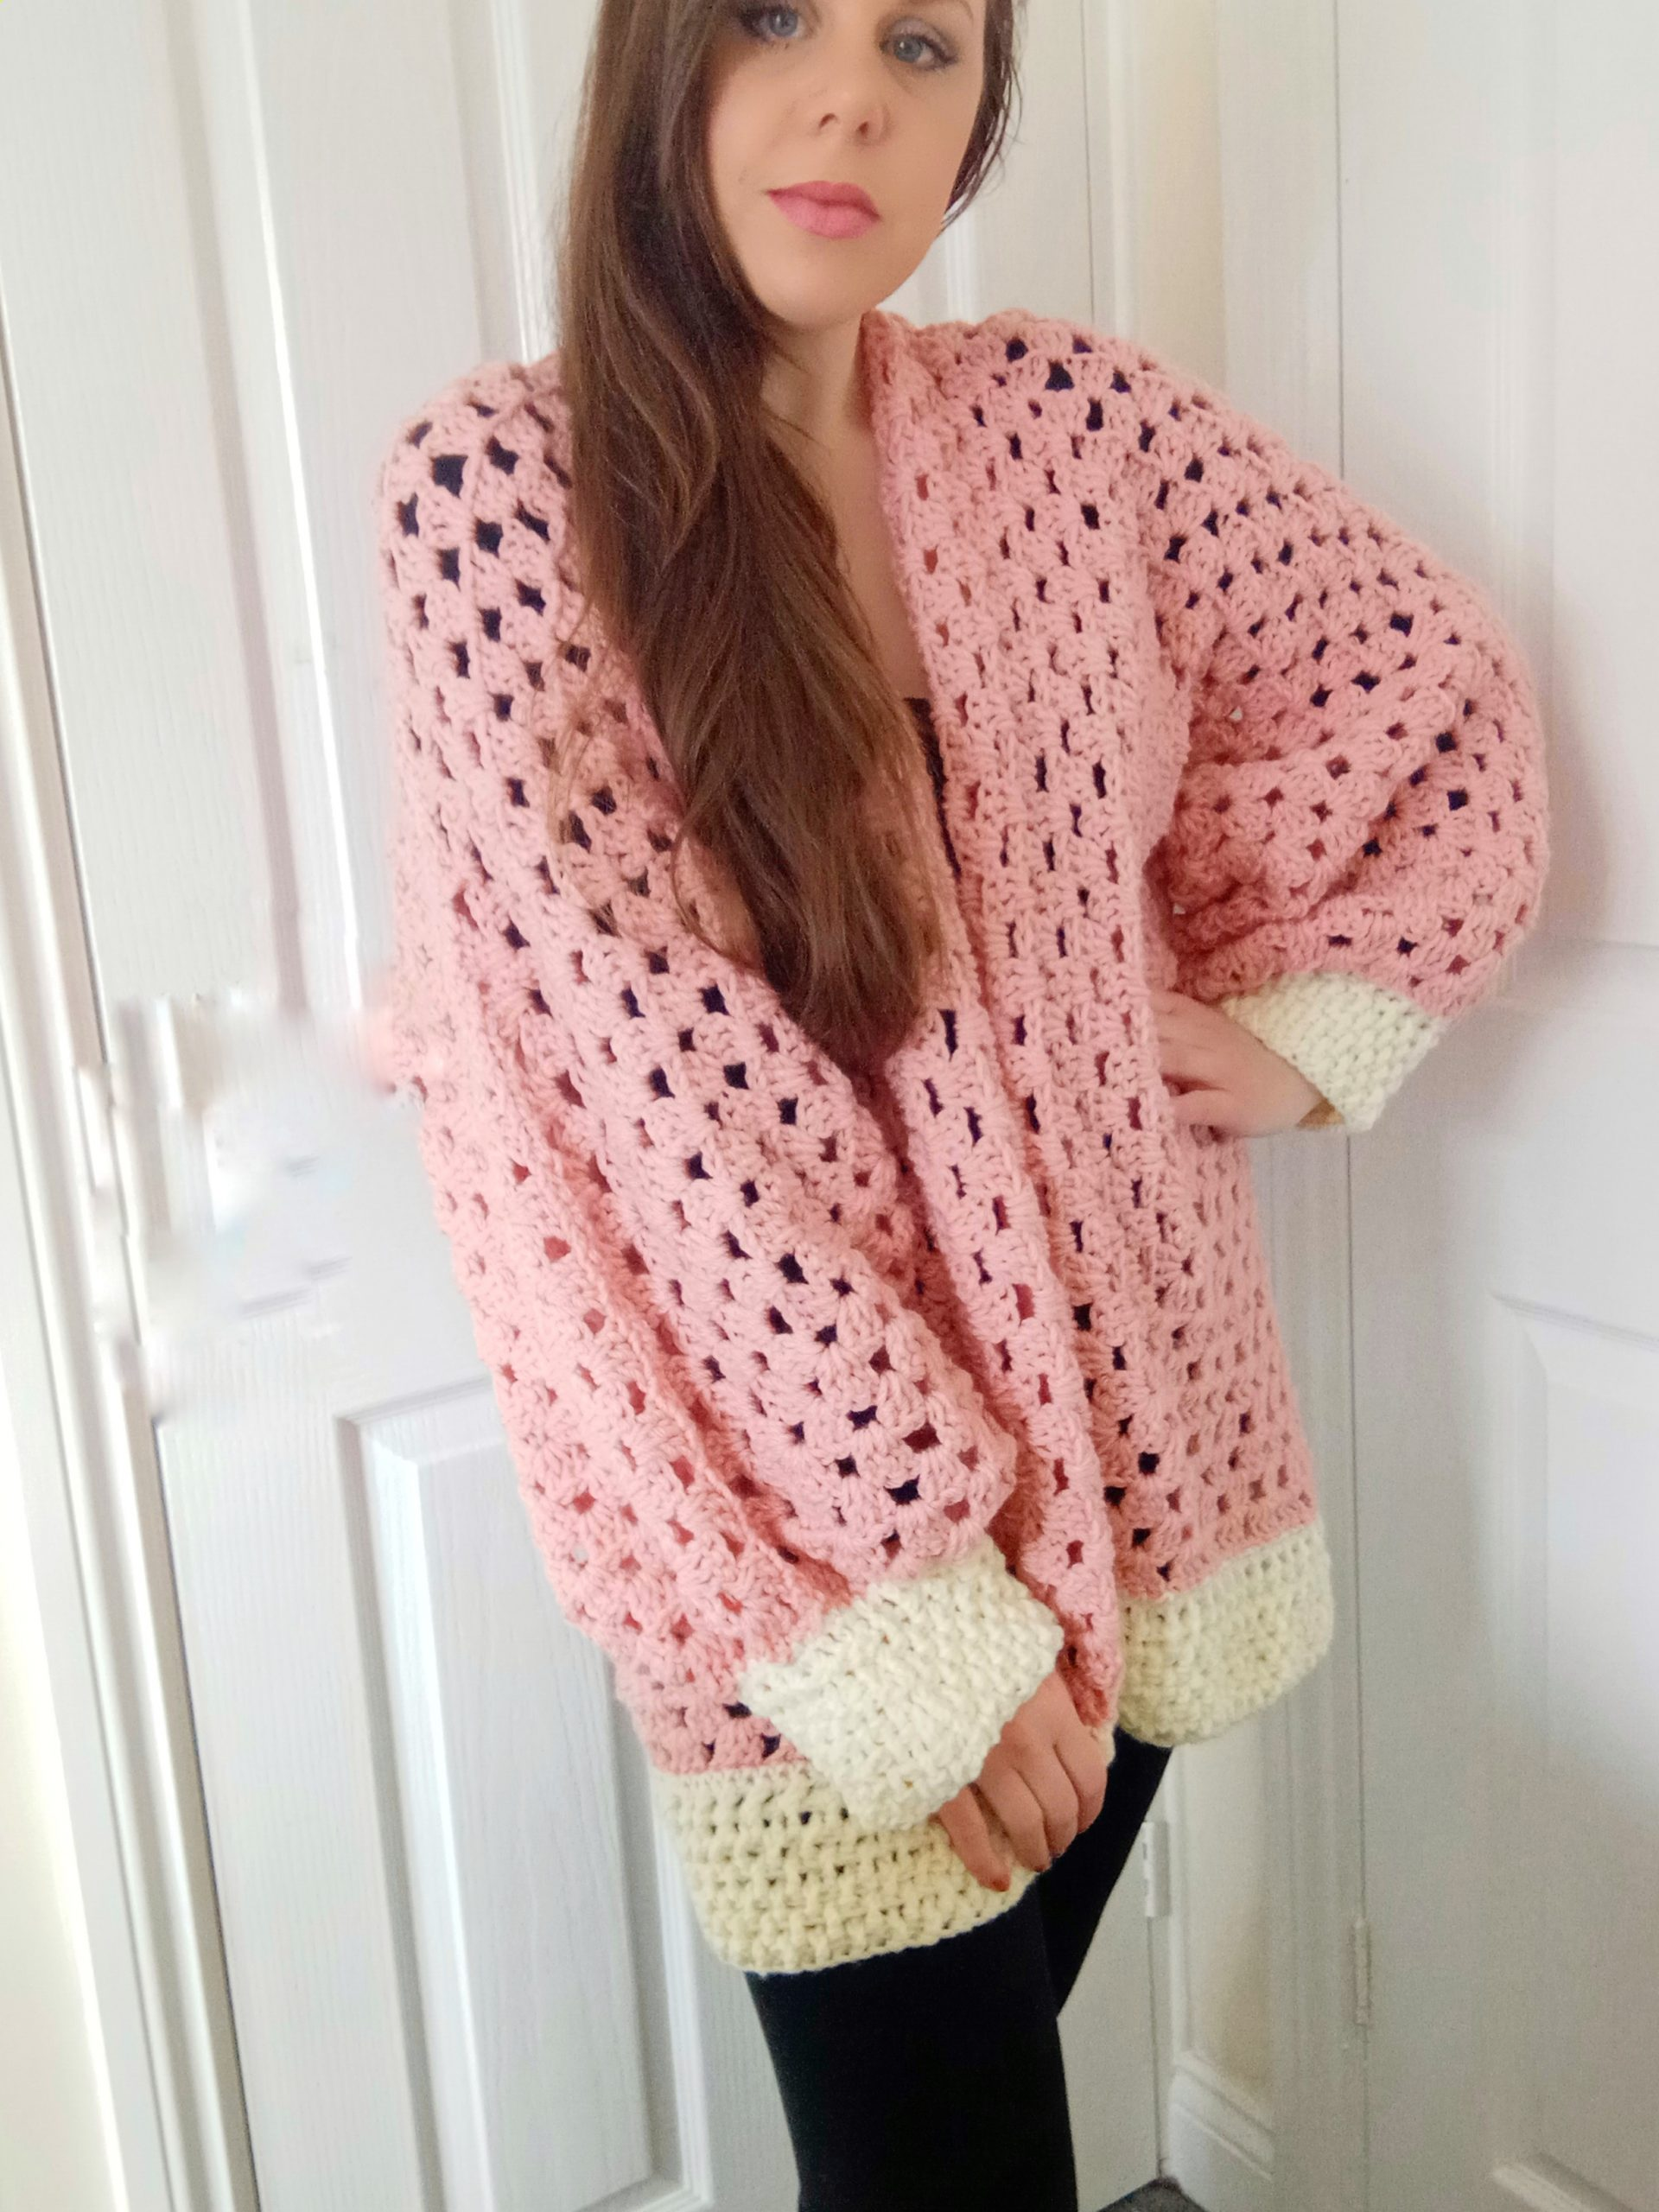 Easy cardigan project